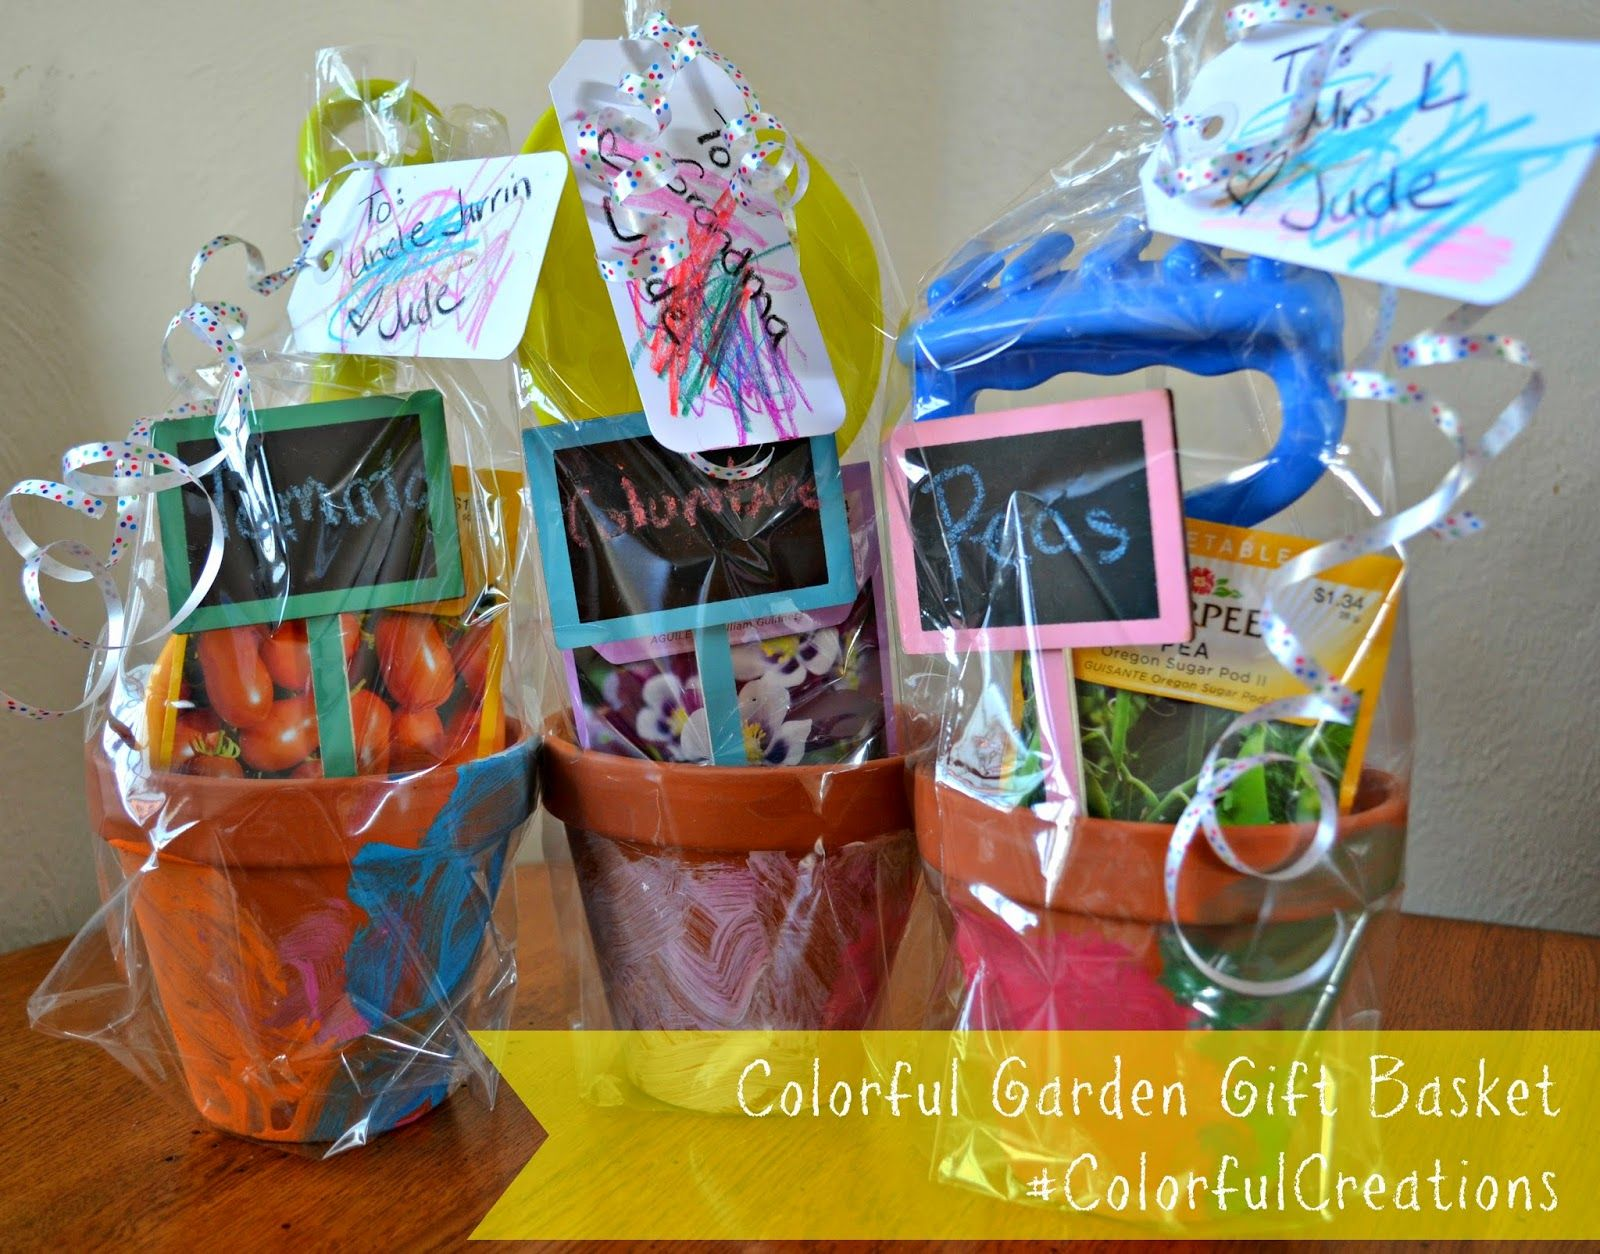 garden gift basket. Creating A Colorful Garden Gift Basket Using Crayola Crayons And Sidewalk Chalk #ColorfulCreations #shop | Building Our Story